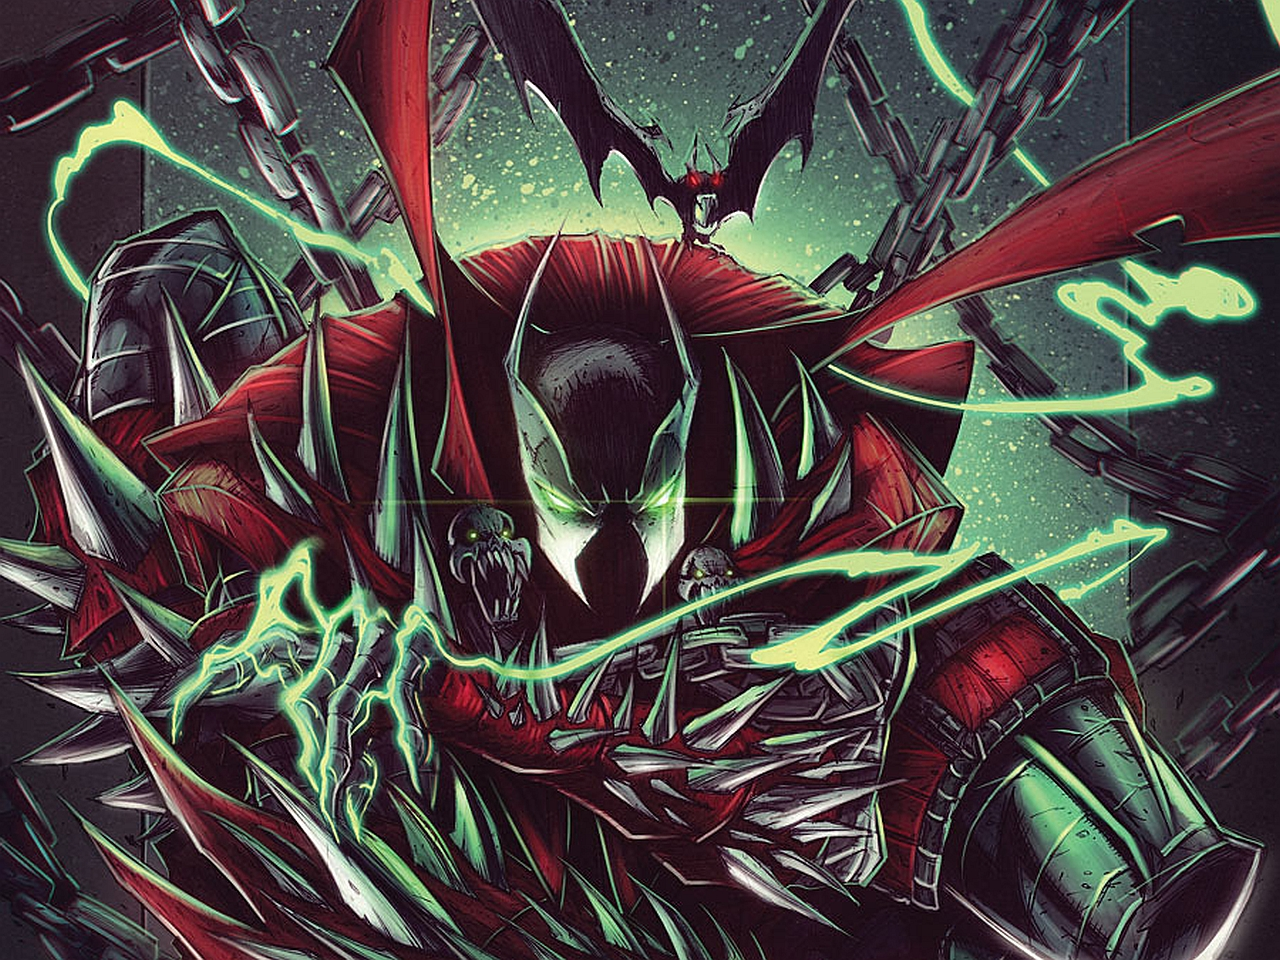 Spawn Computer Wallpapers, Desktop Backgrounds | 1280x960 | ID:393013